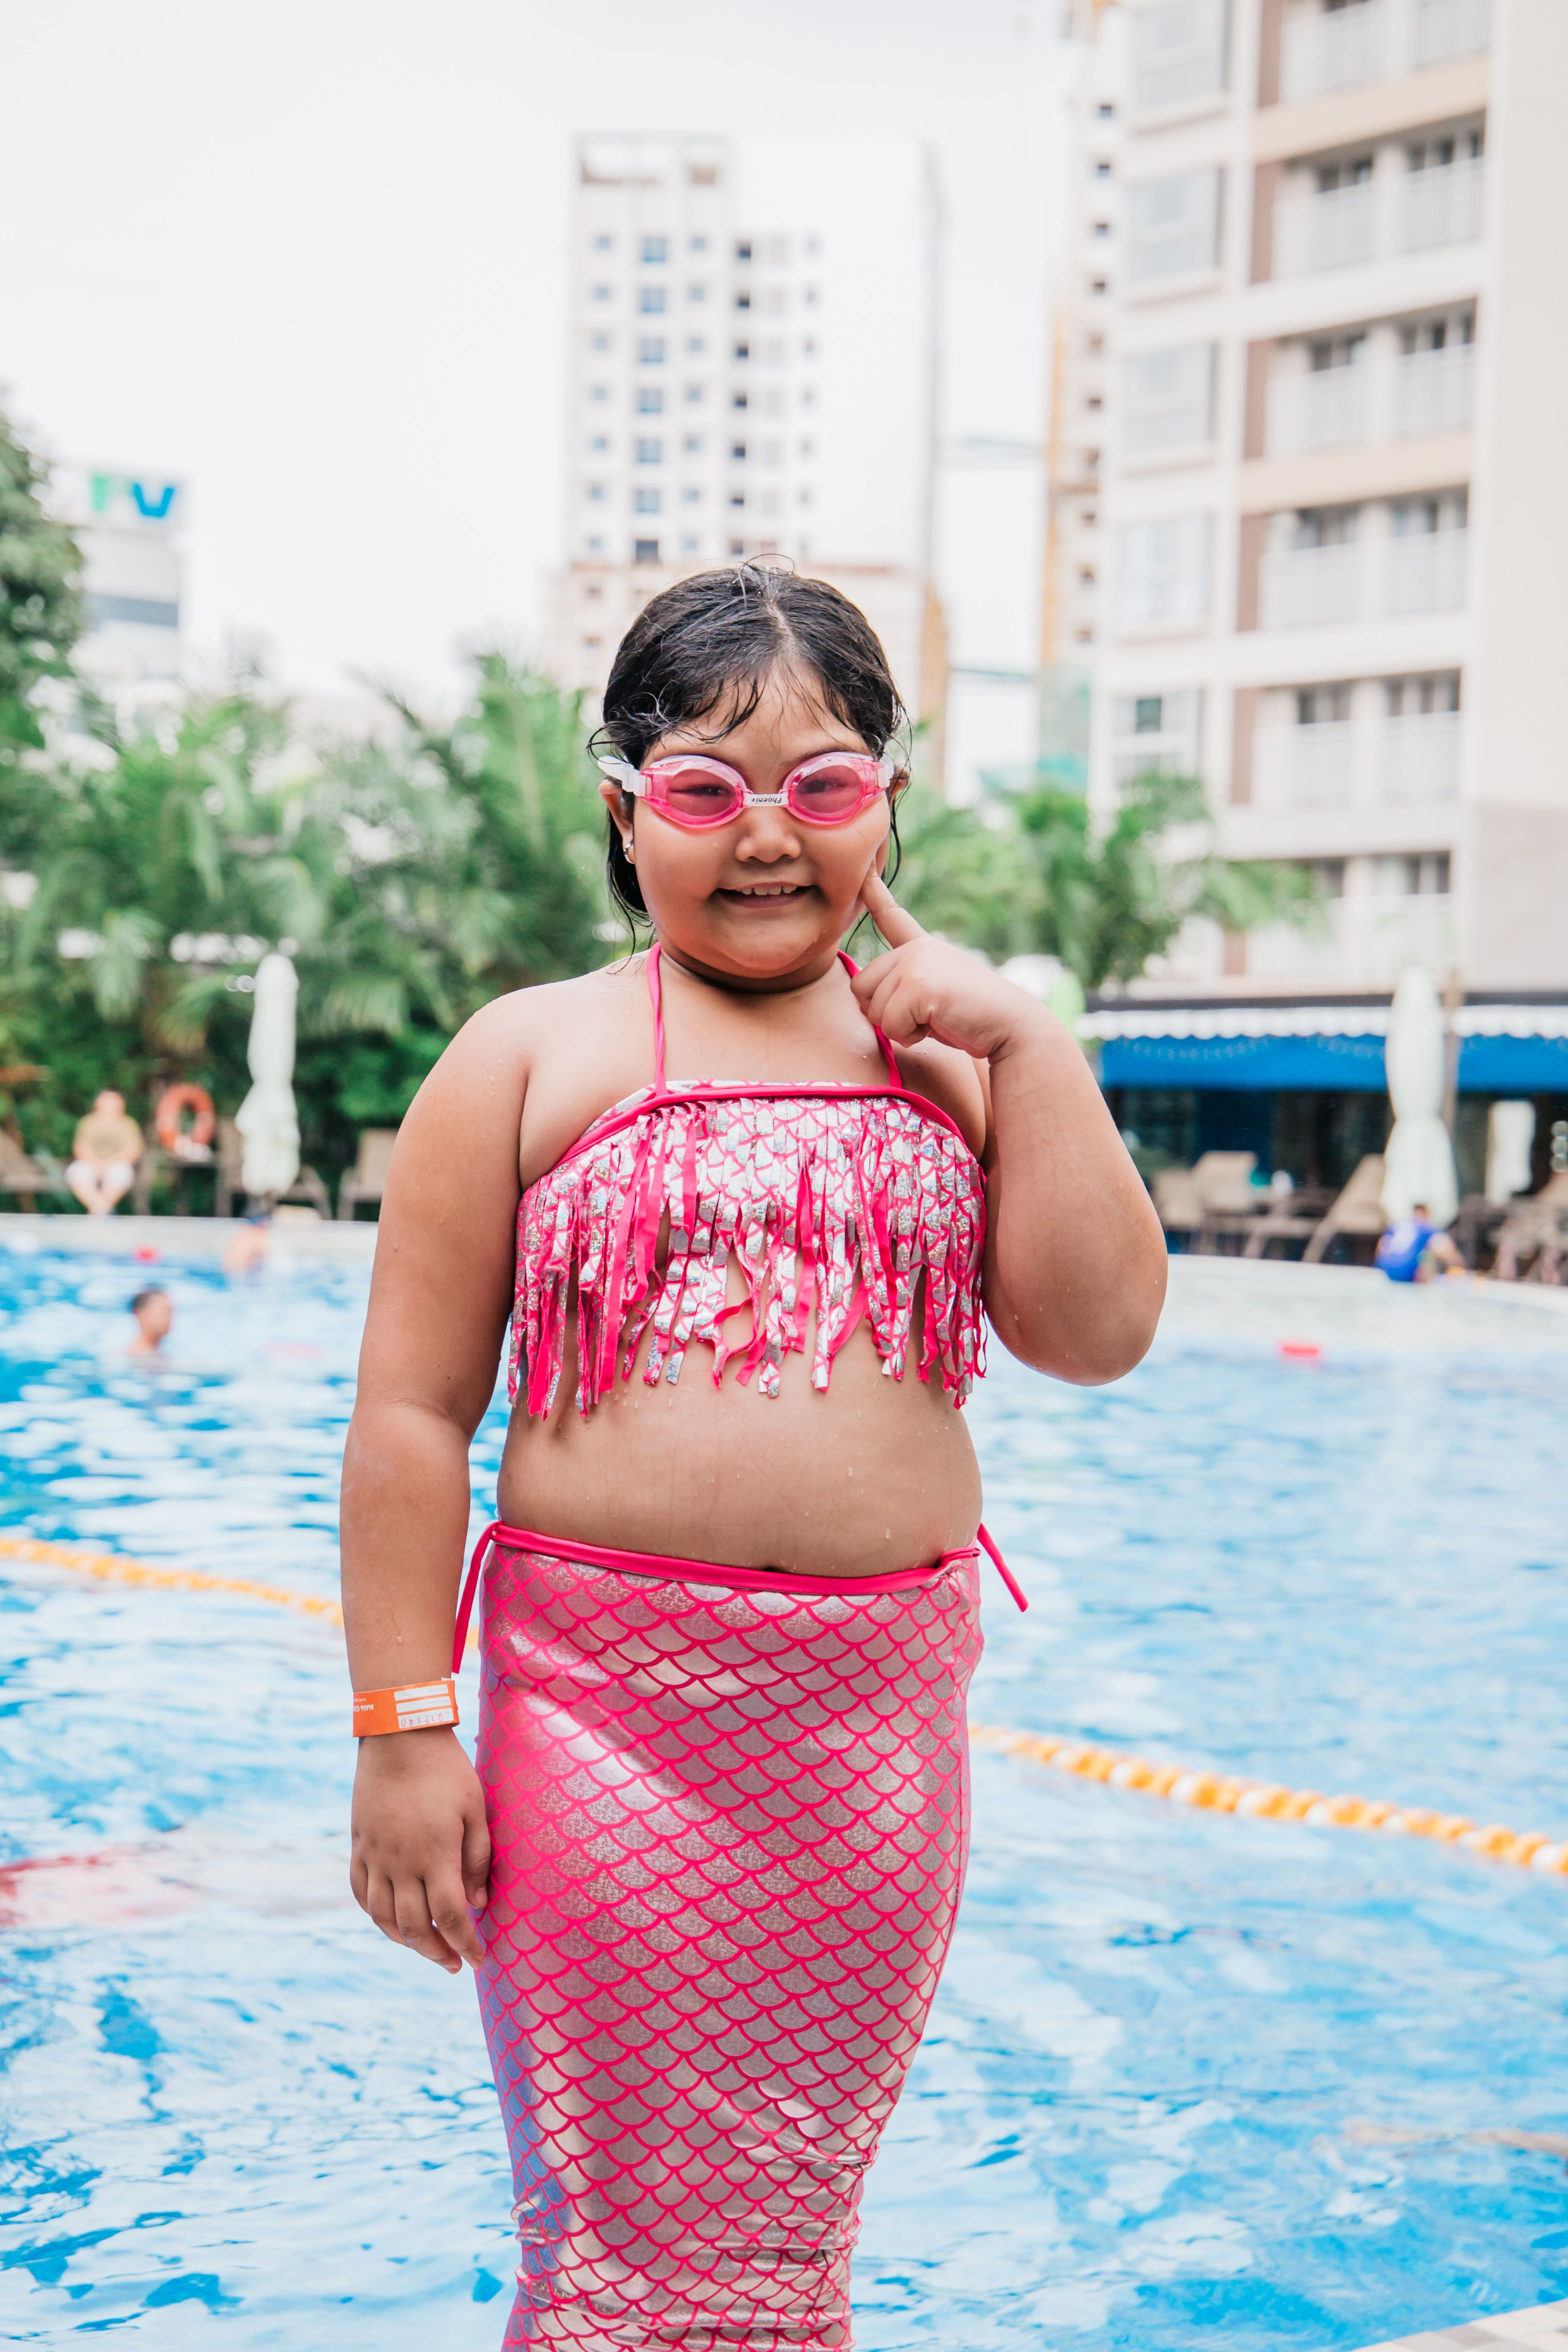 This obesity girl wearing a mermaid tail is the real queen of the sea.  Merman Tiun can make the best mermaid tail for all sizes #mermantiun #tiun  #swimming ...